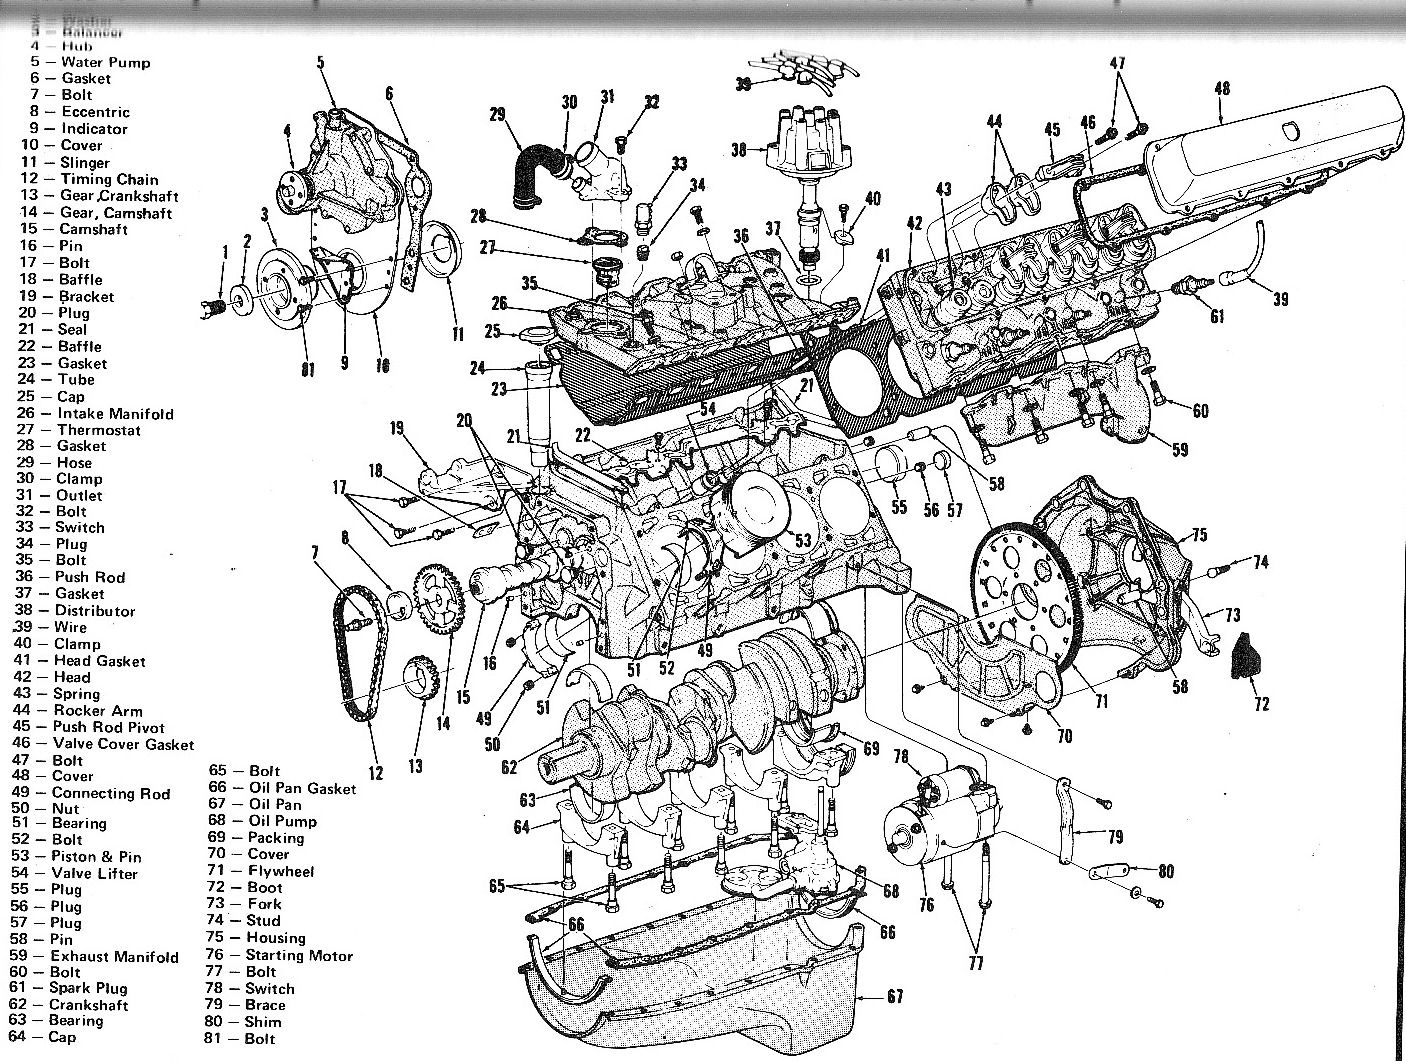 hight resolution of ford mustang 289 engine diagram oil electrical schematic wiring ford mustang 289 engine diagram oil